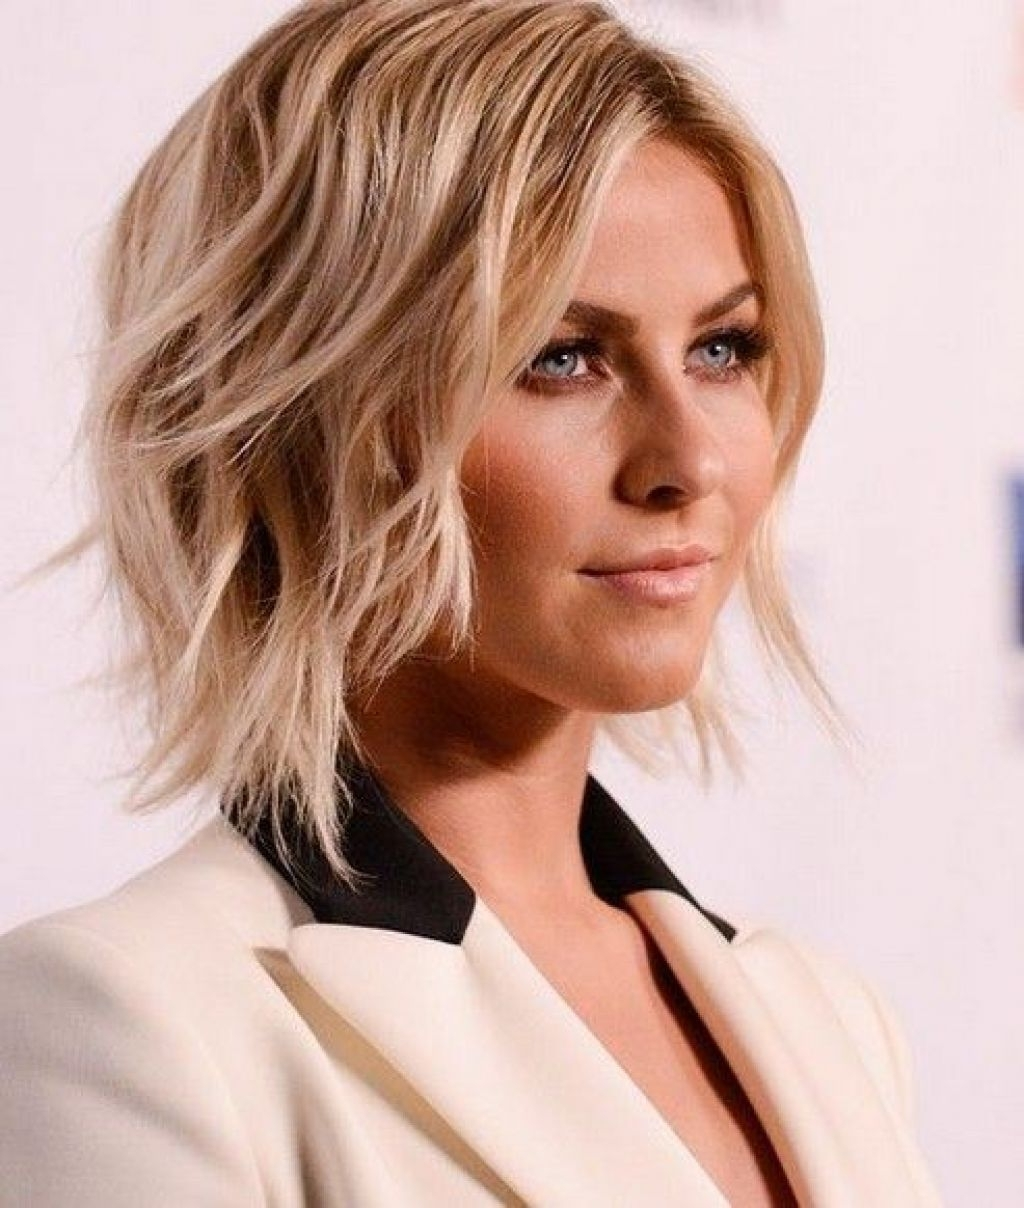 Trendy Shaggy Hairstyles For Round Faces In Wavy Bob Hairstyles For Round Faces Pinterest – Popular Long (View 14 of 15)